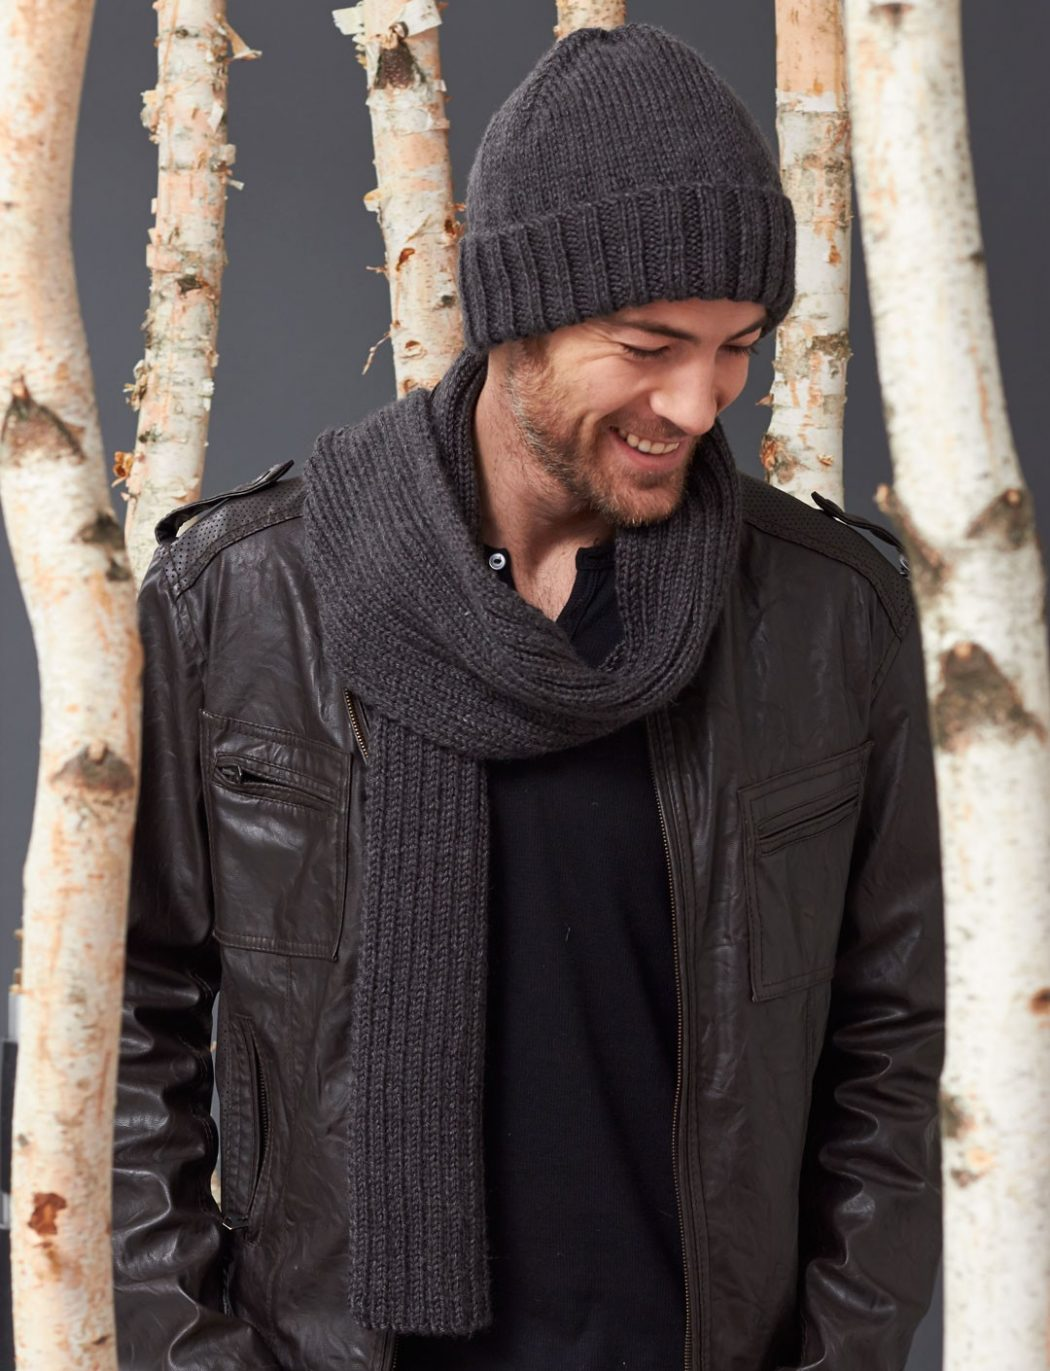 Accessories1 Next 8 Hottest Menswear Trends for Winter